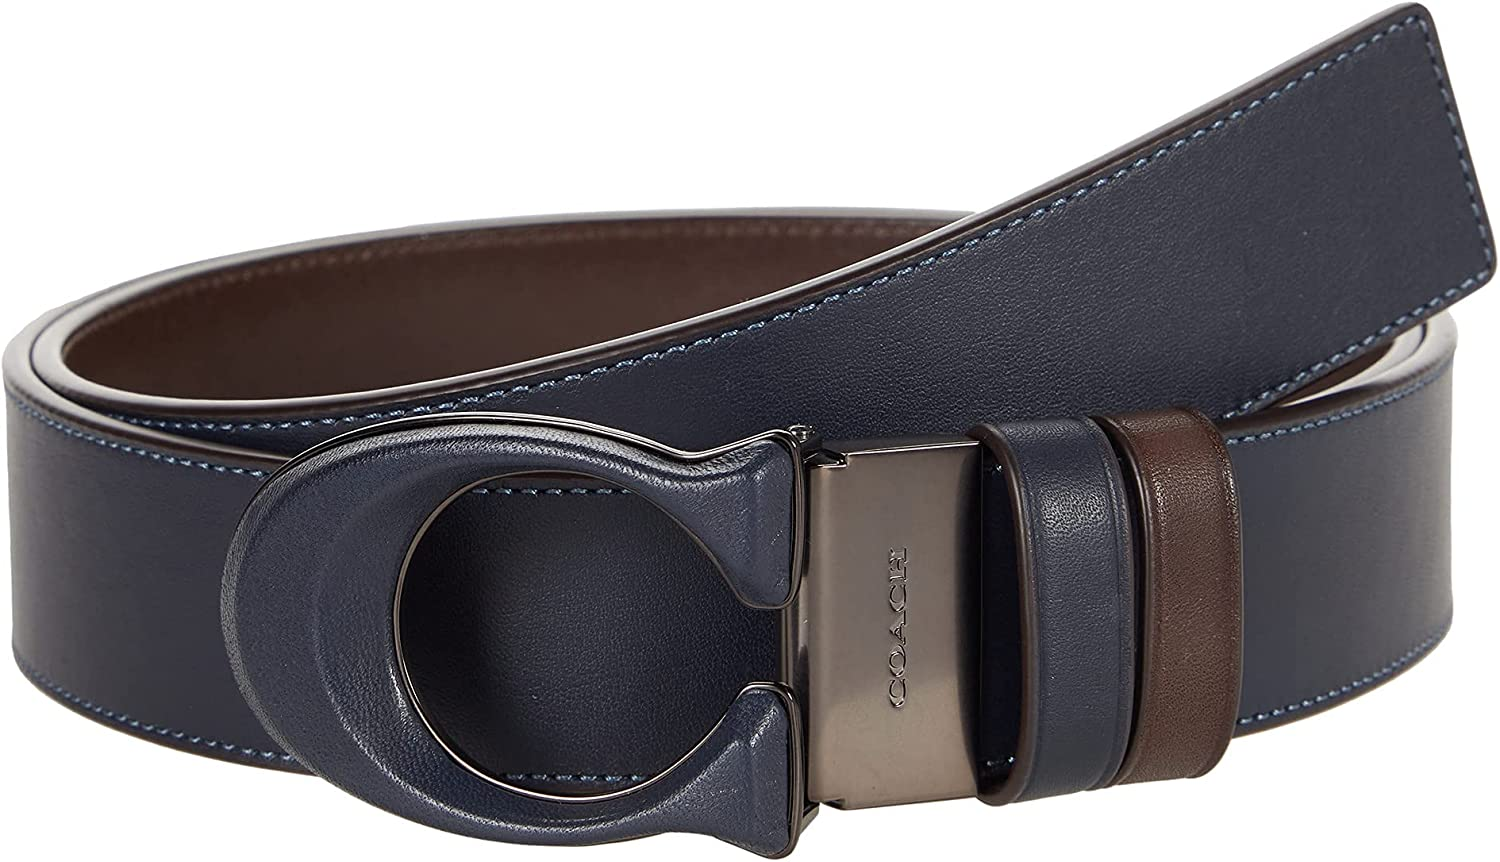 COACH 38 mm Reversible Leather Inlay C Buckle Belt in Sport Calf